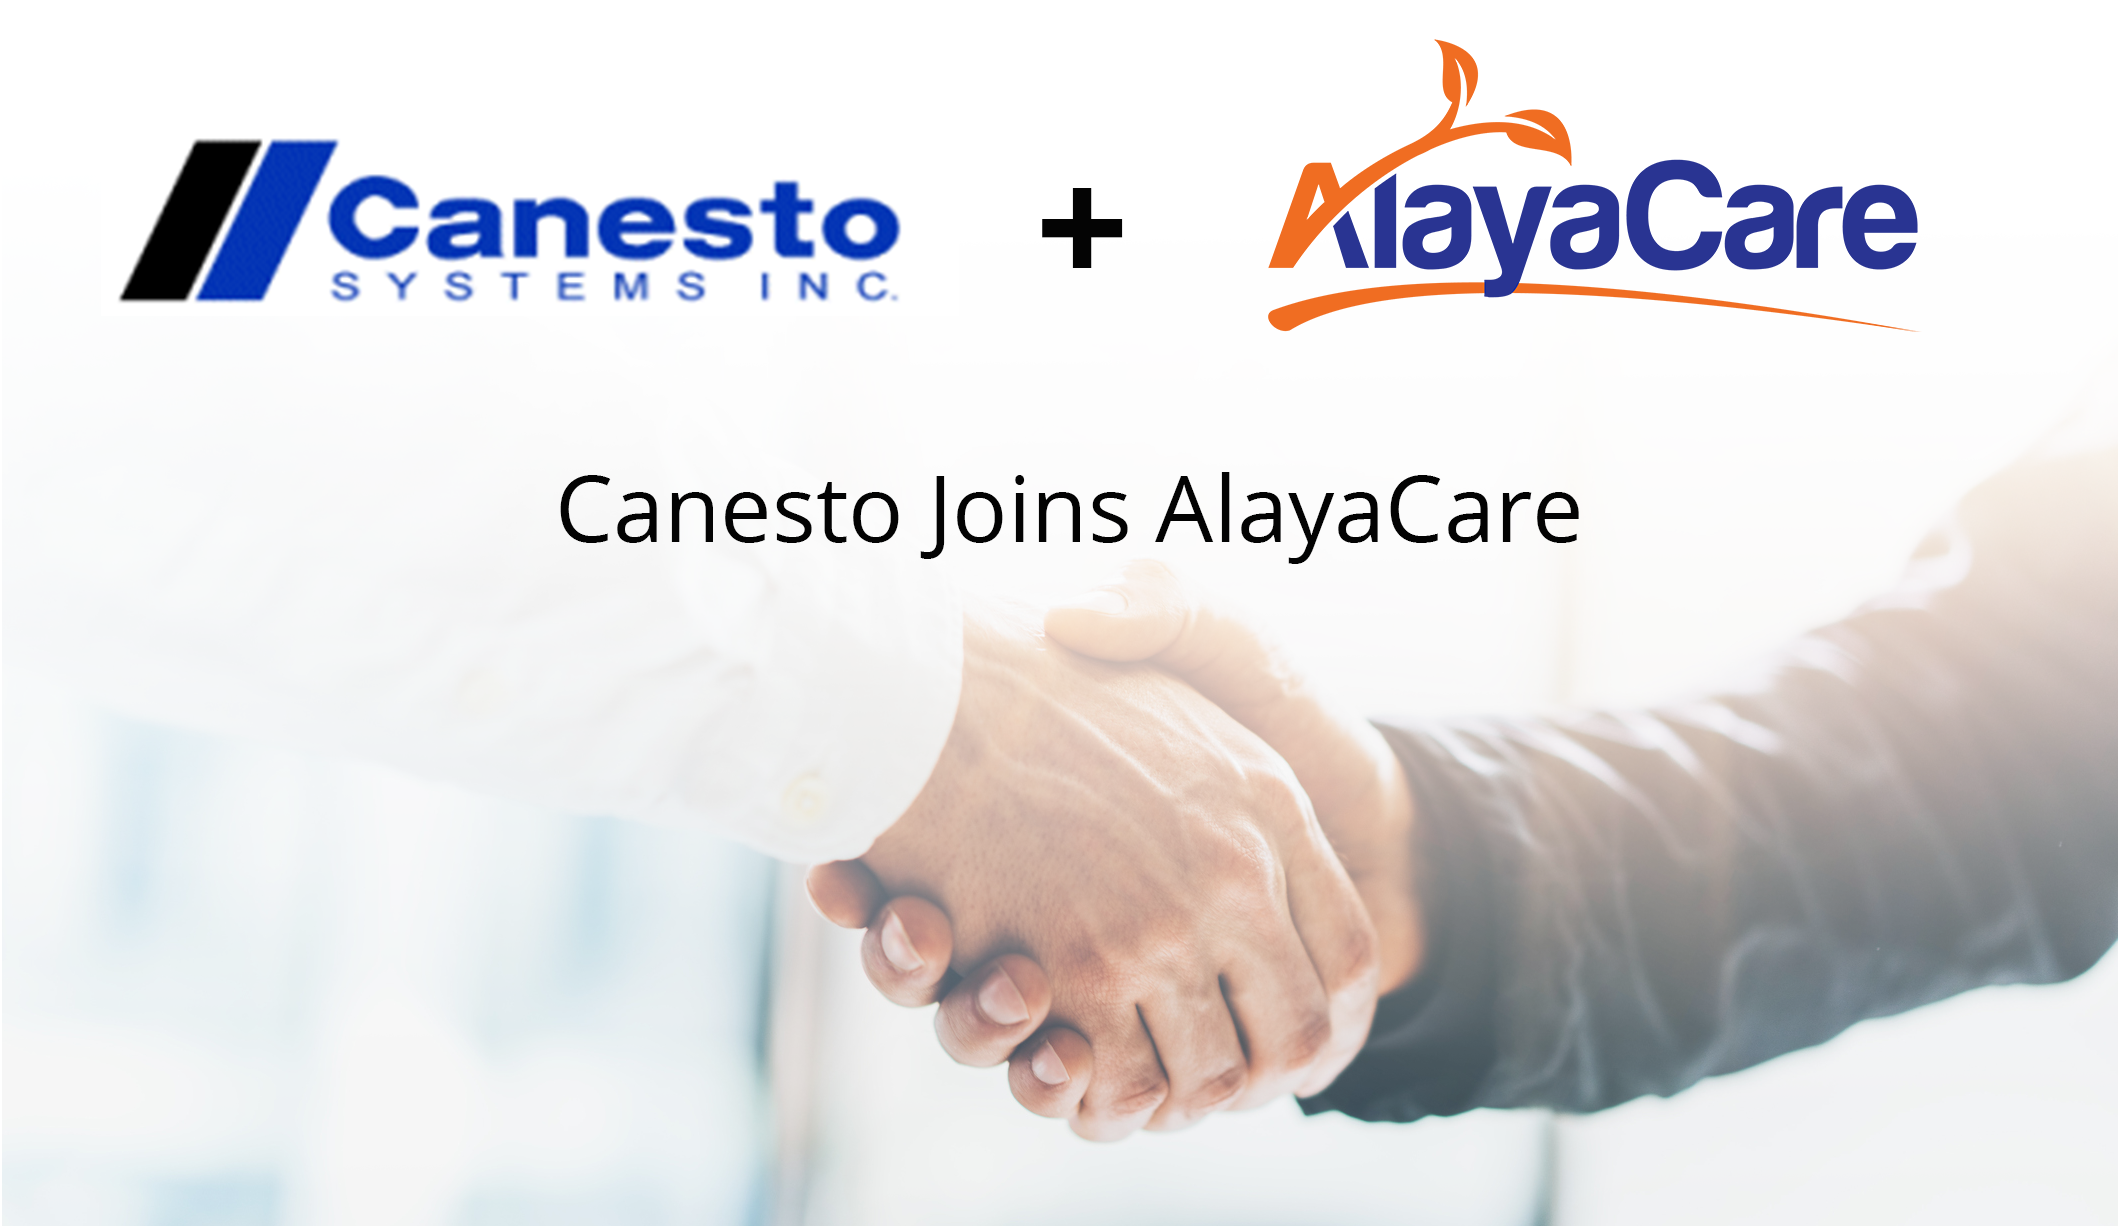 AlayaCare Enterprise Home Care Software Announces Acquisition of Canesto Systems Inc.